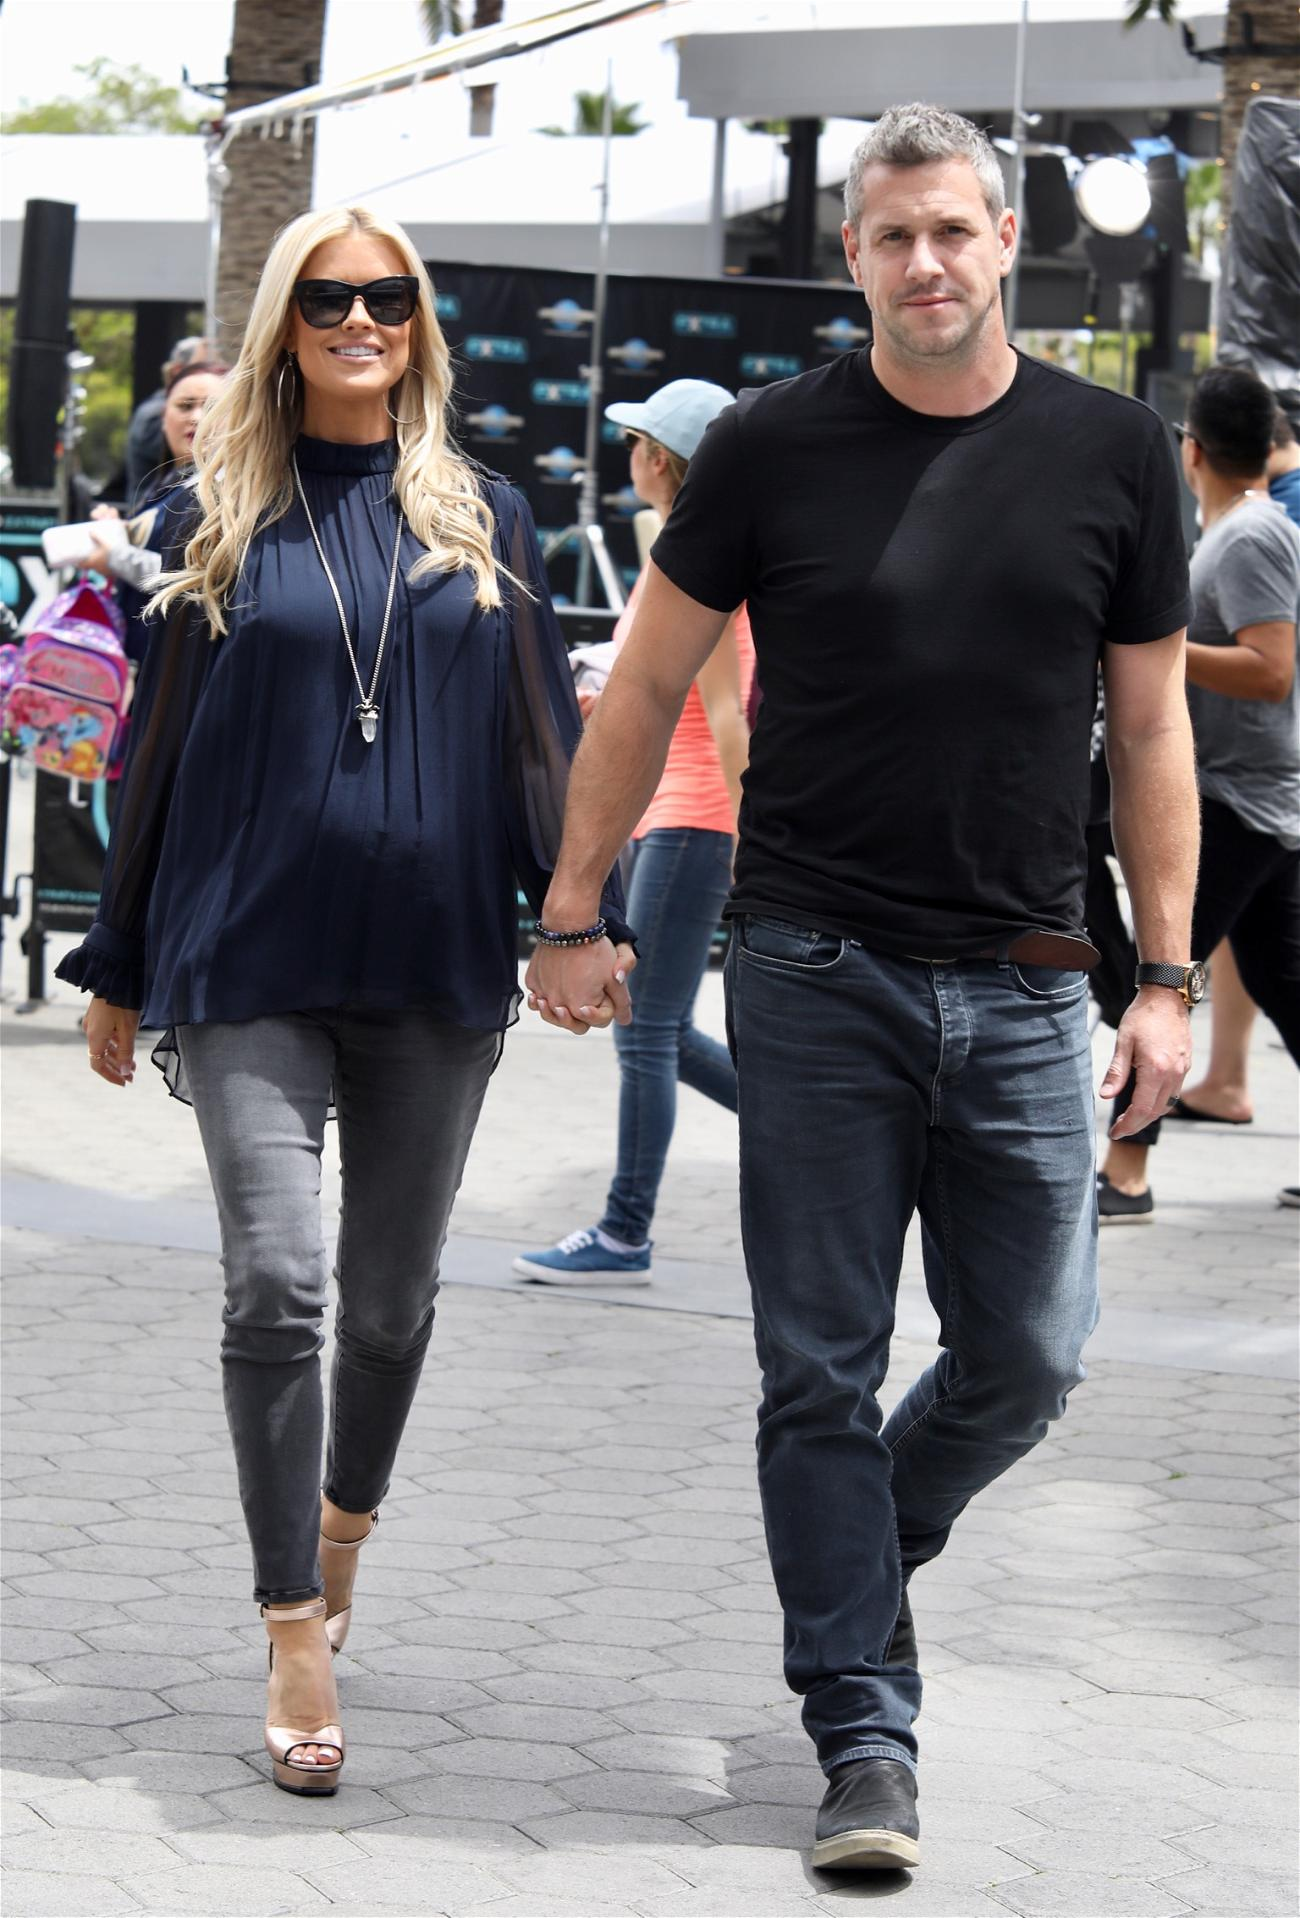 Renée Zellweger And Ant Anstead Go Instagram Official After 3 Months Of Dating!